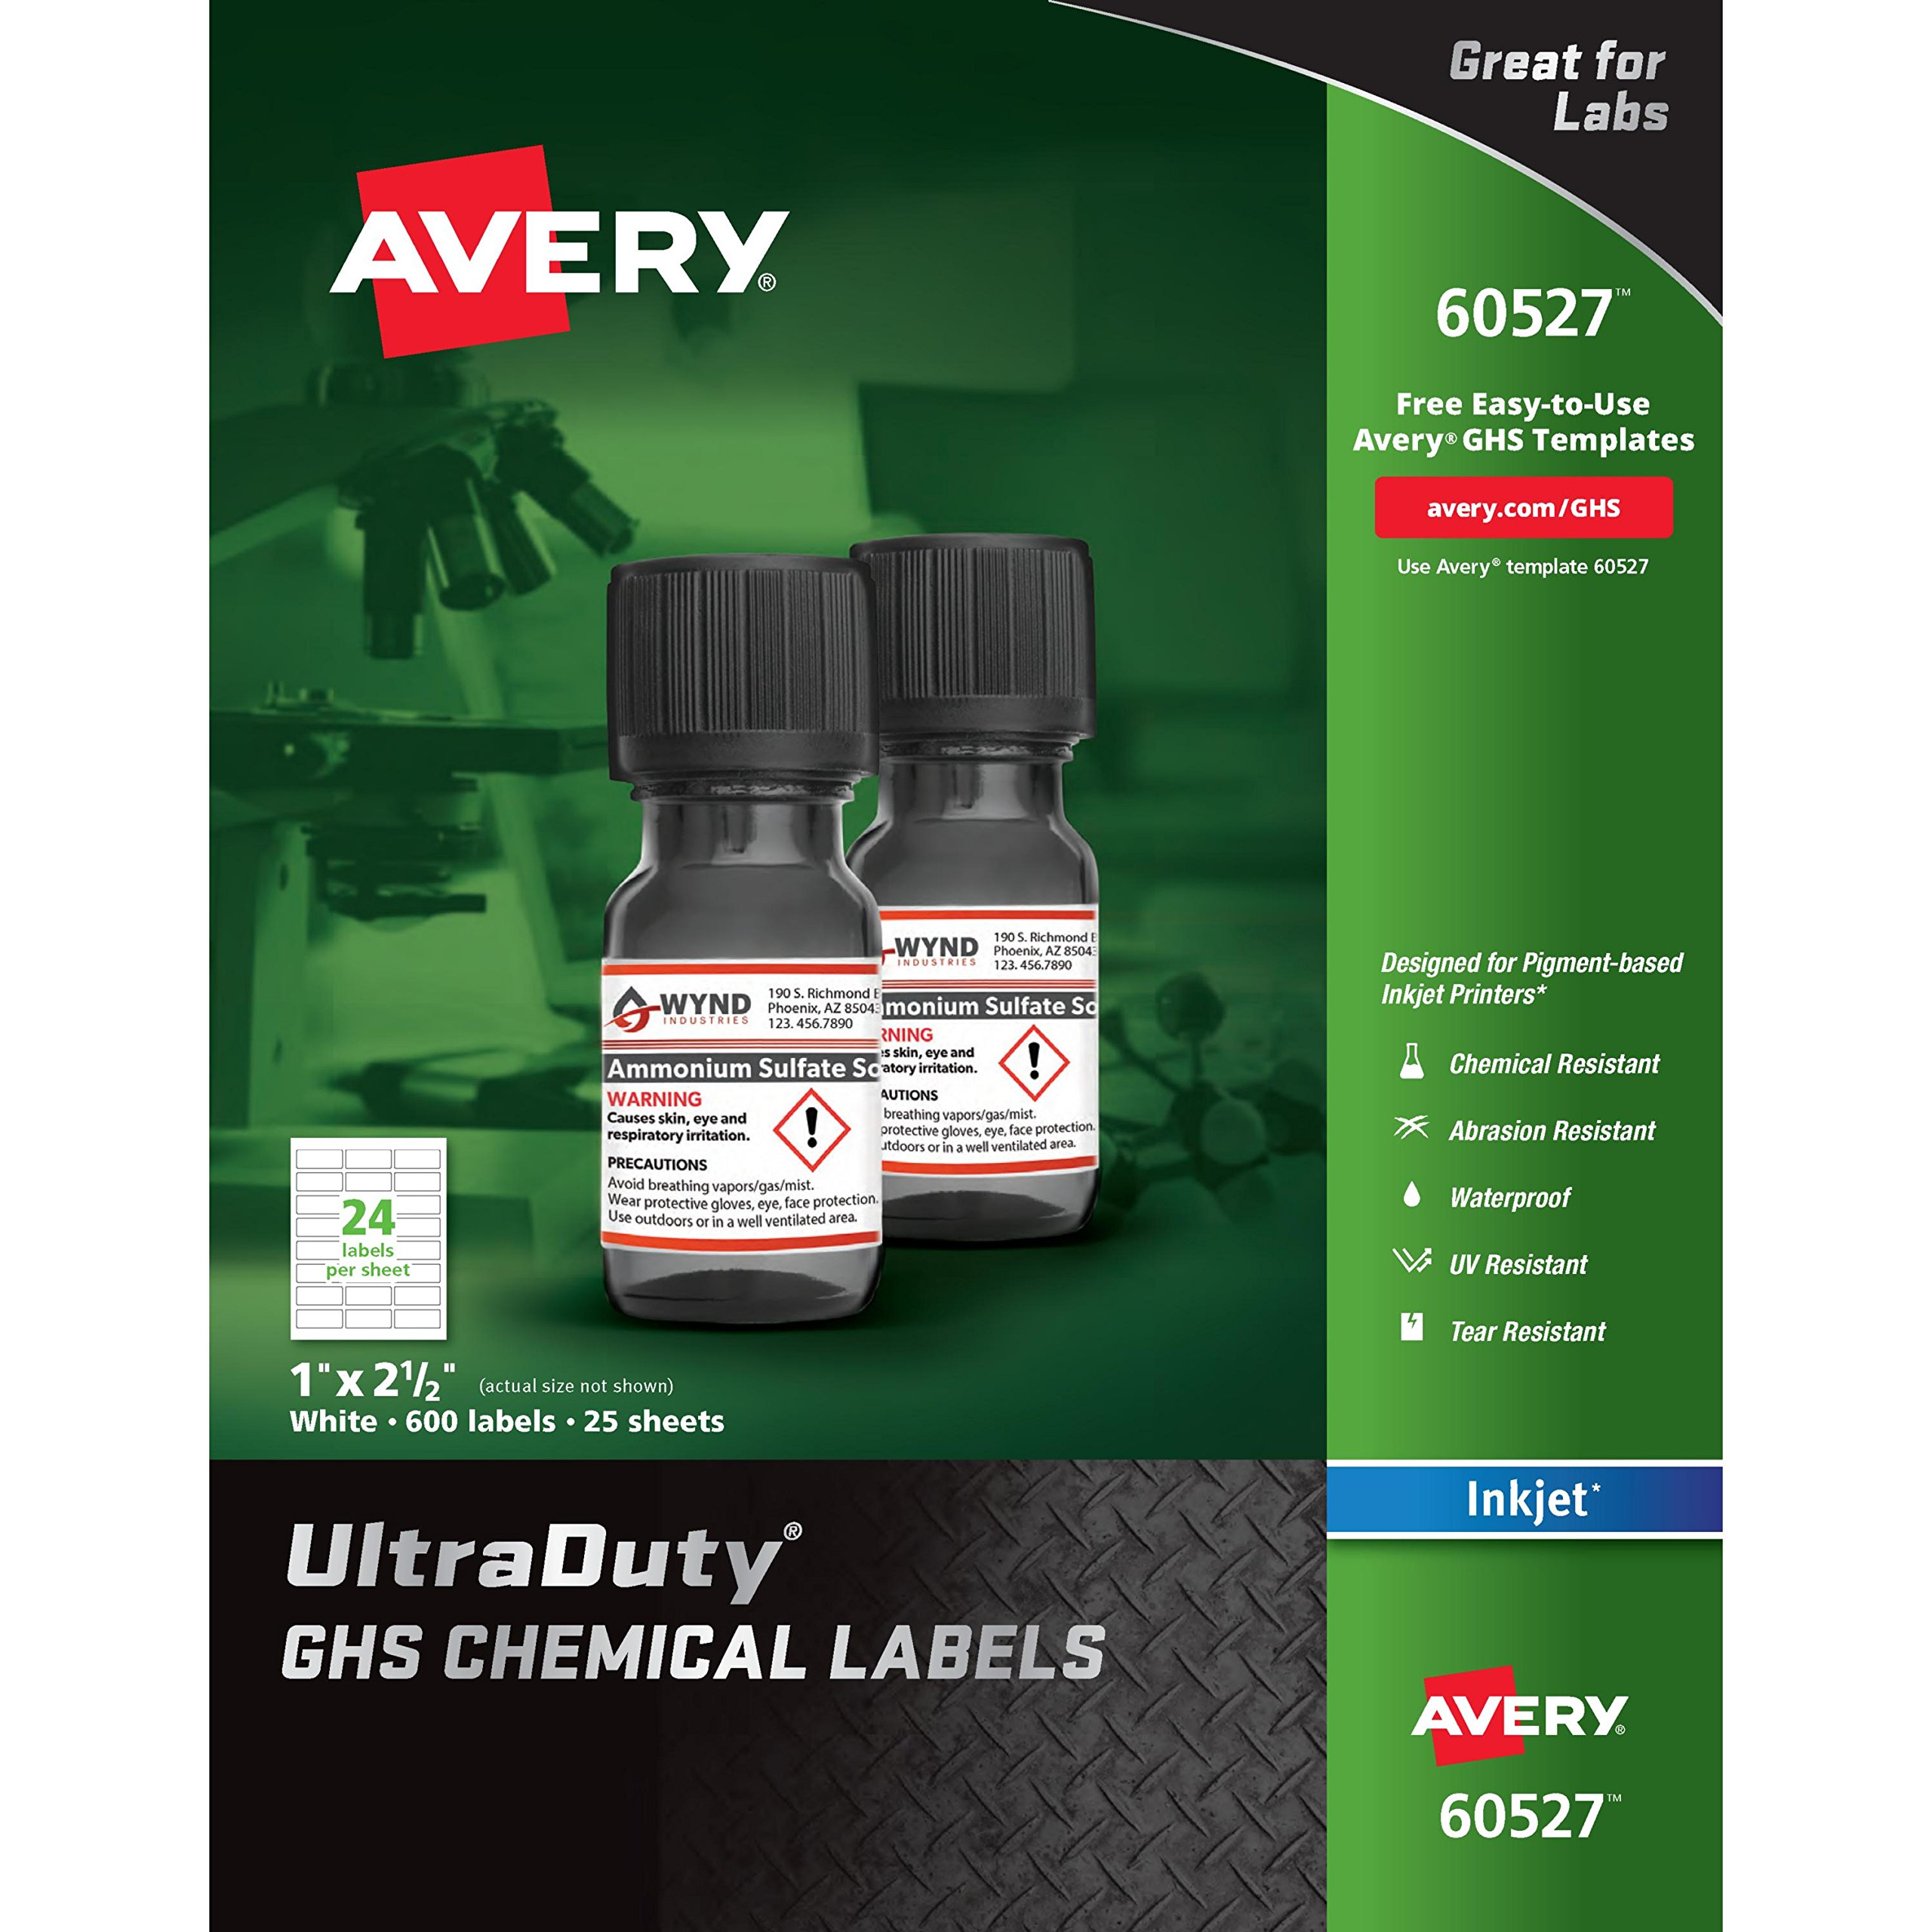 Avery UltraDuty GHS Chemical Labels for Pigment Inkjet Printers, Waterproof, UV Resistant, 1''x 2.5'', Pack of 600 (60527)